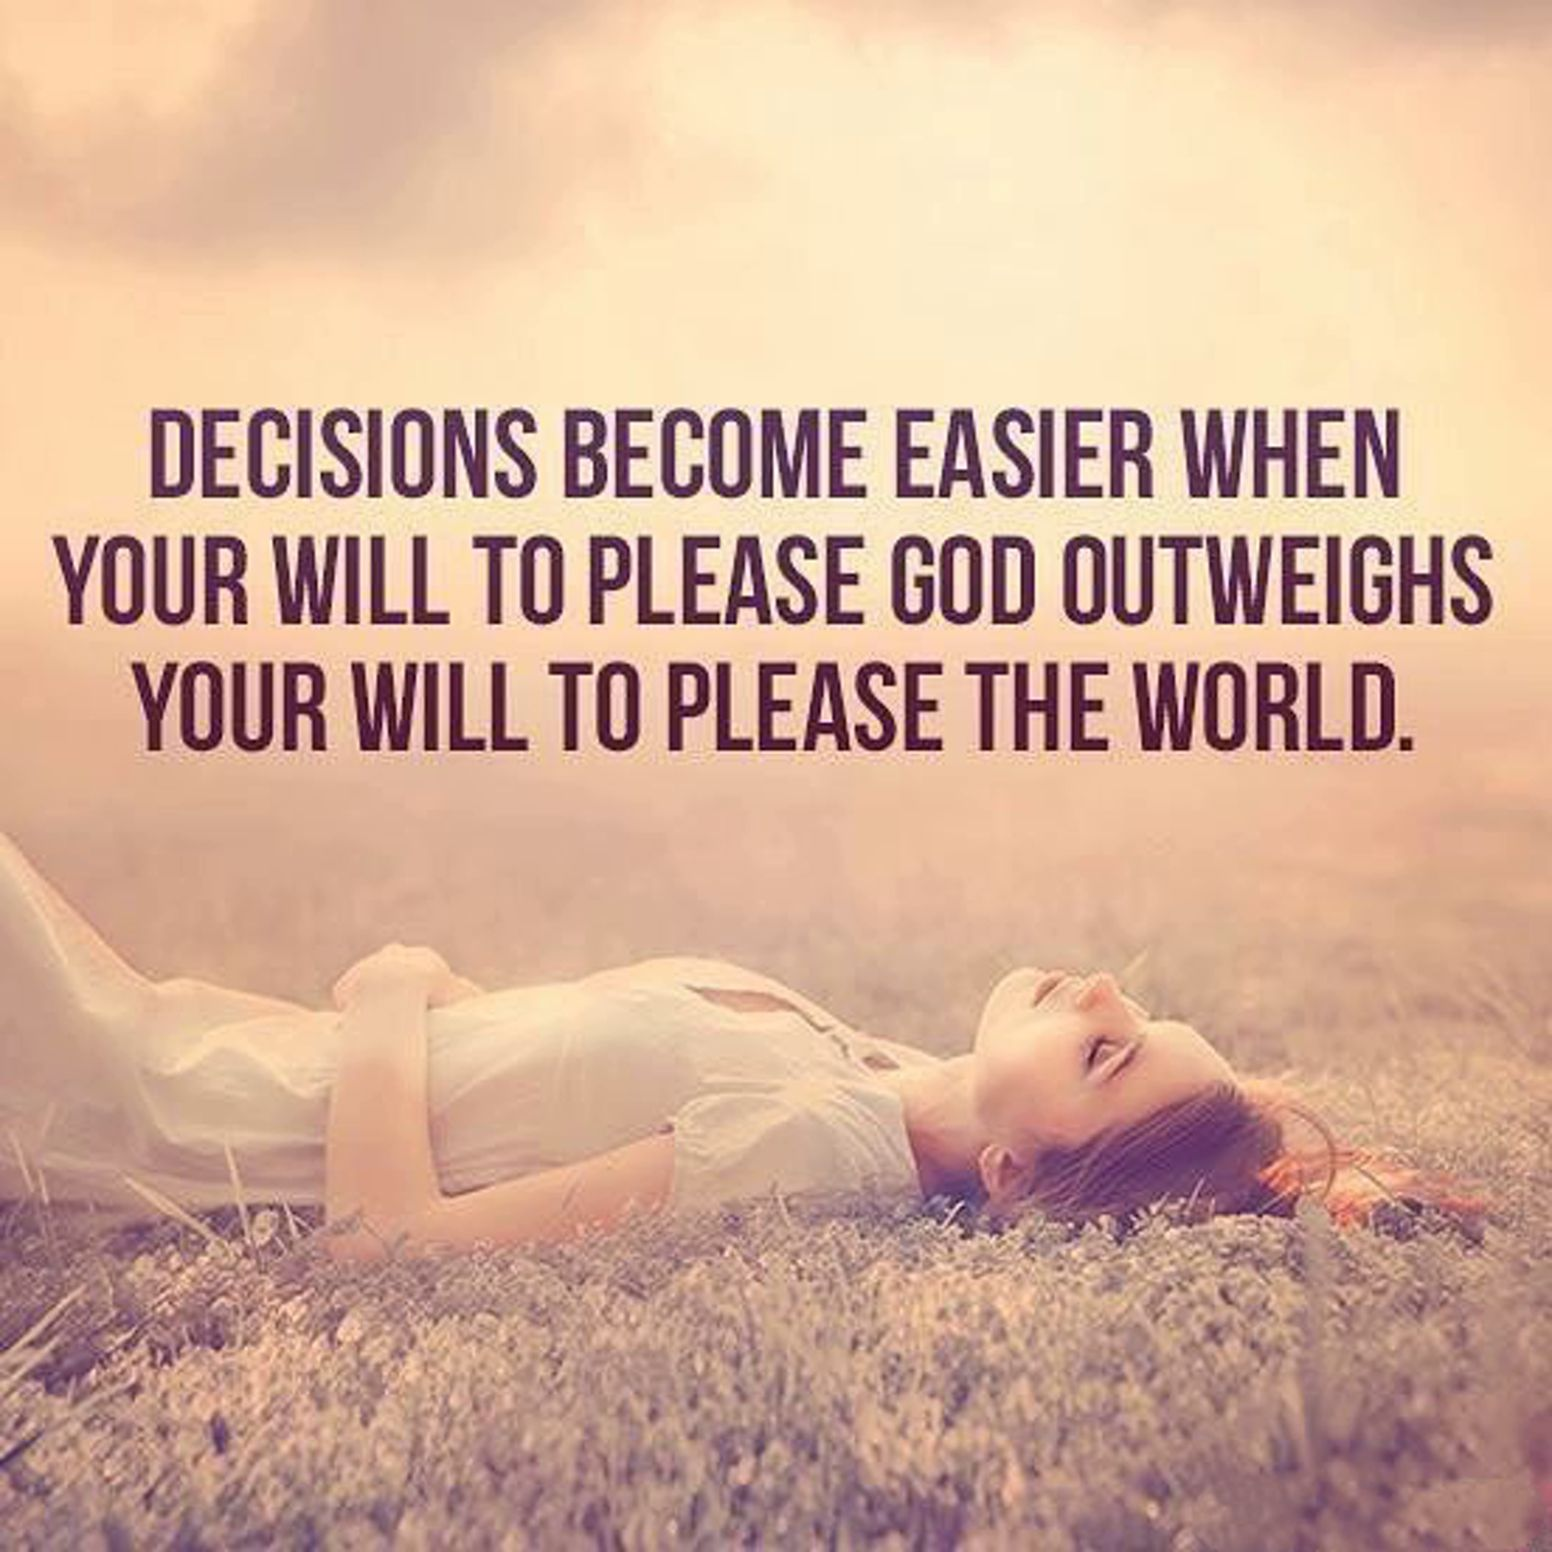 Decisions be e easier when your will to please God out weighs your will to please the